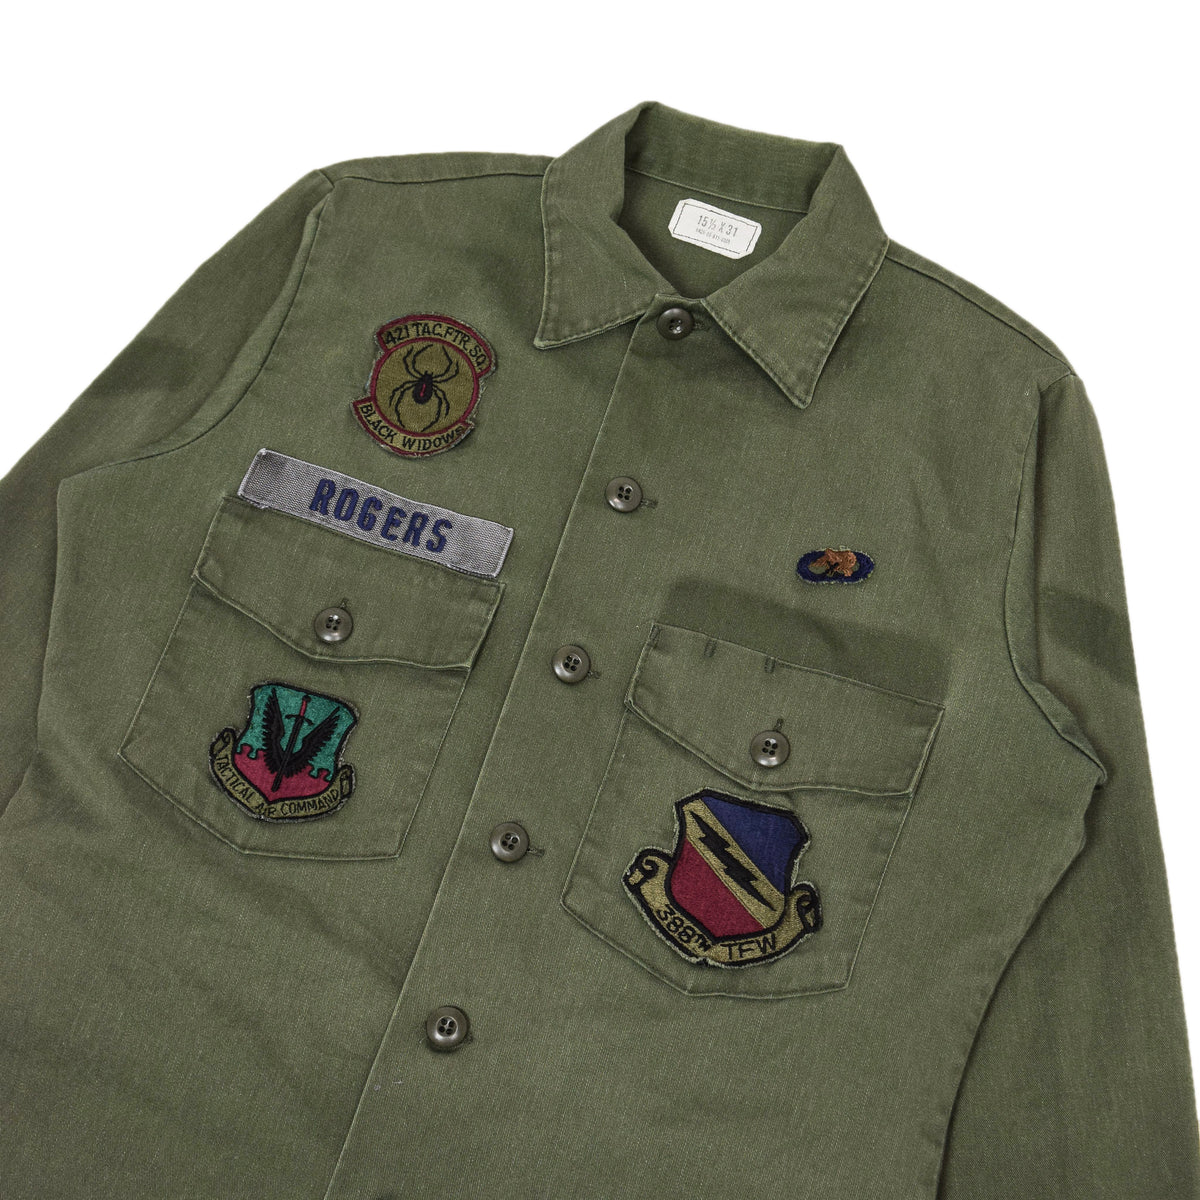 Vintage 80s US Air Force Dura Press Utility Military Shirt OG-507 Olive Green S / M chest